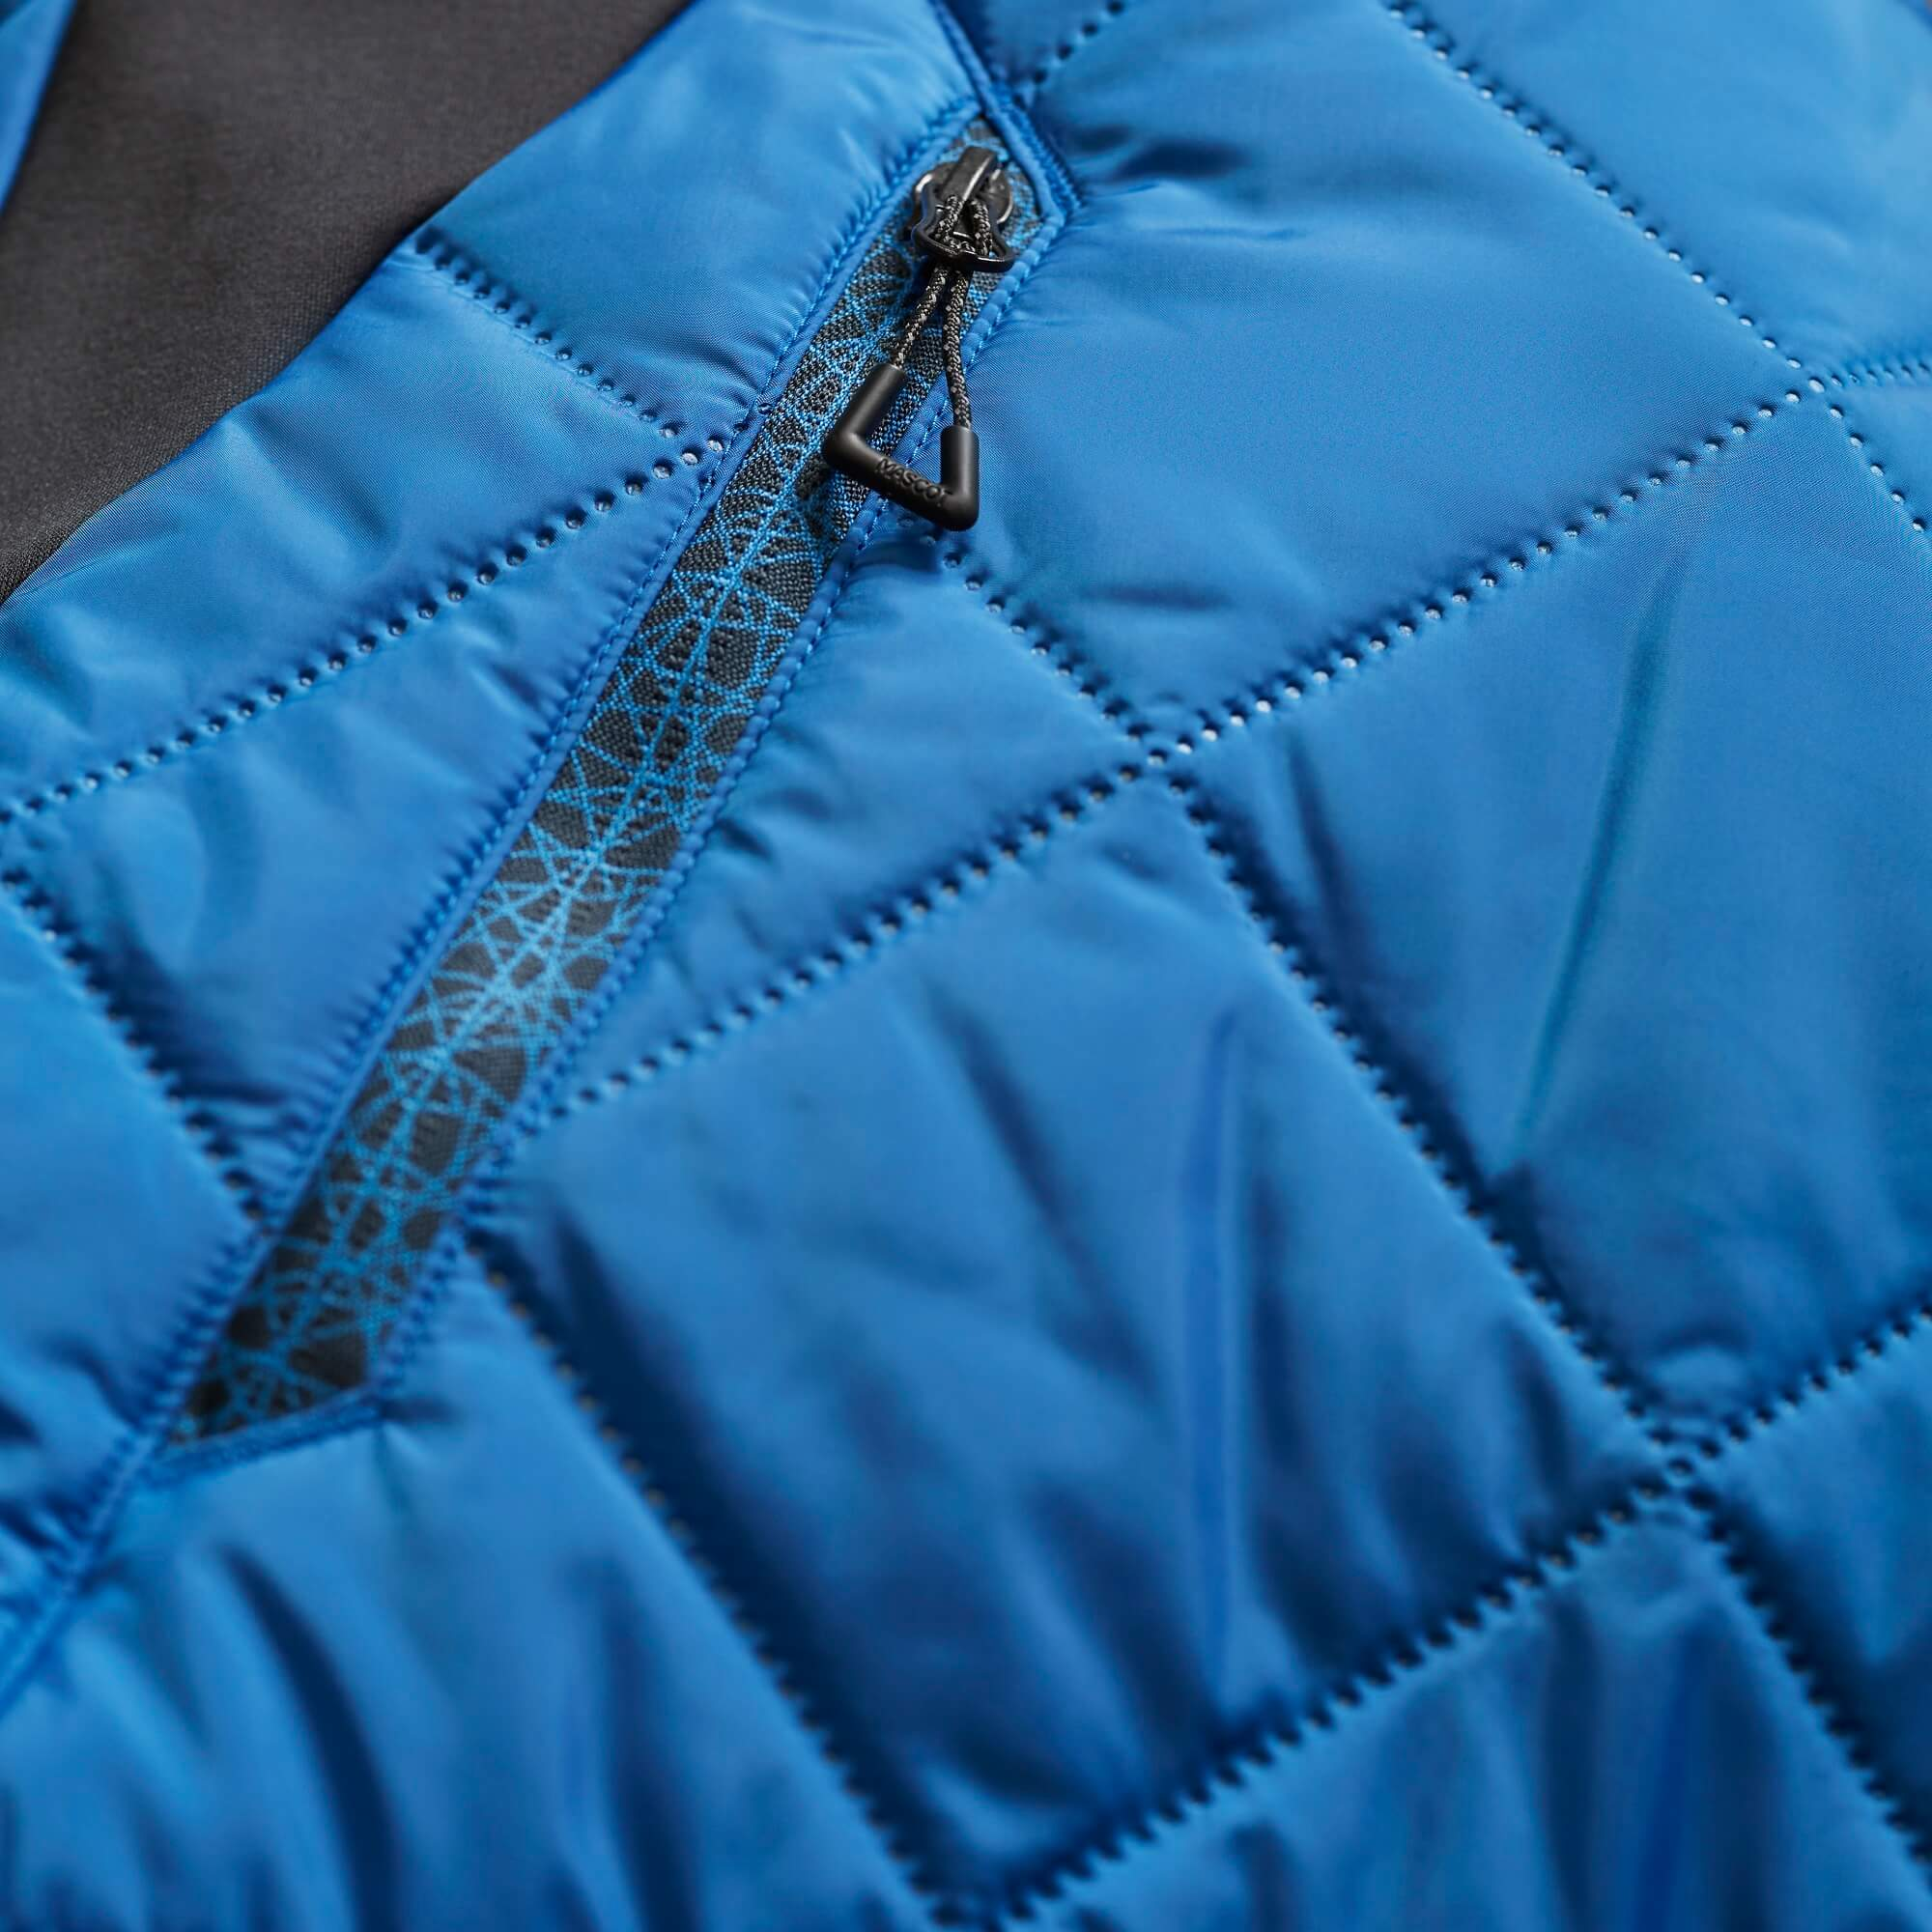 Thermal Clothing - Royal blue - Detail - MASCOT® ACCELERATE